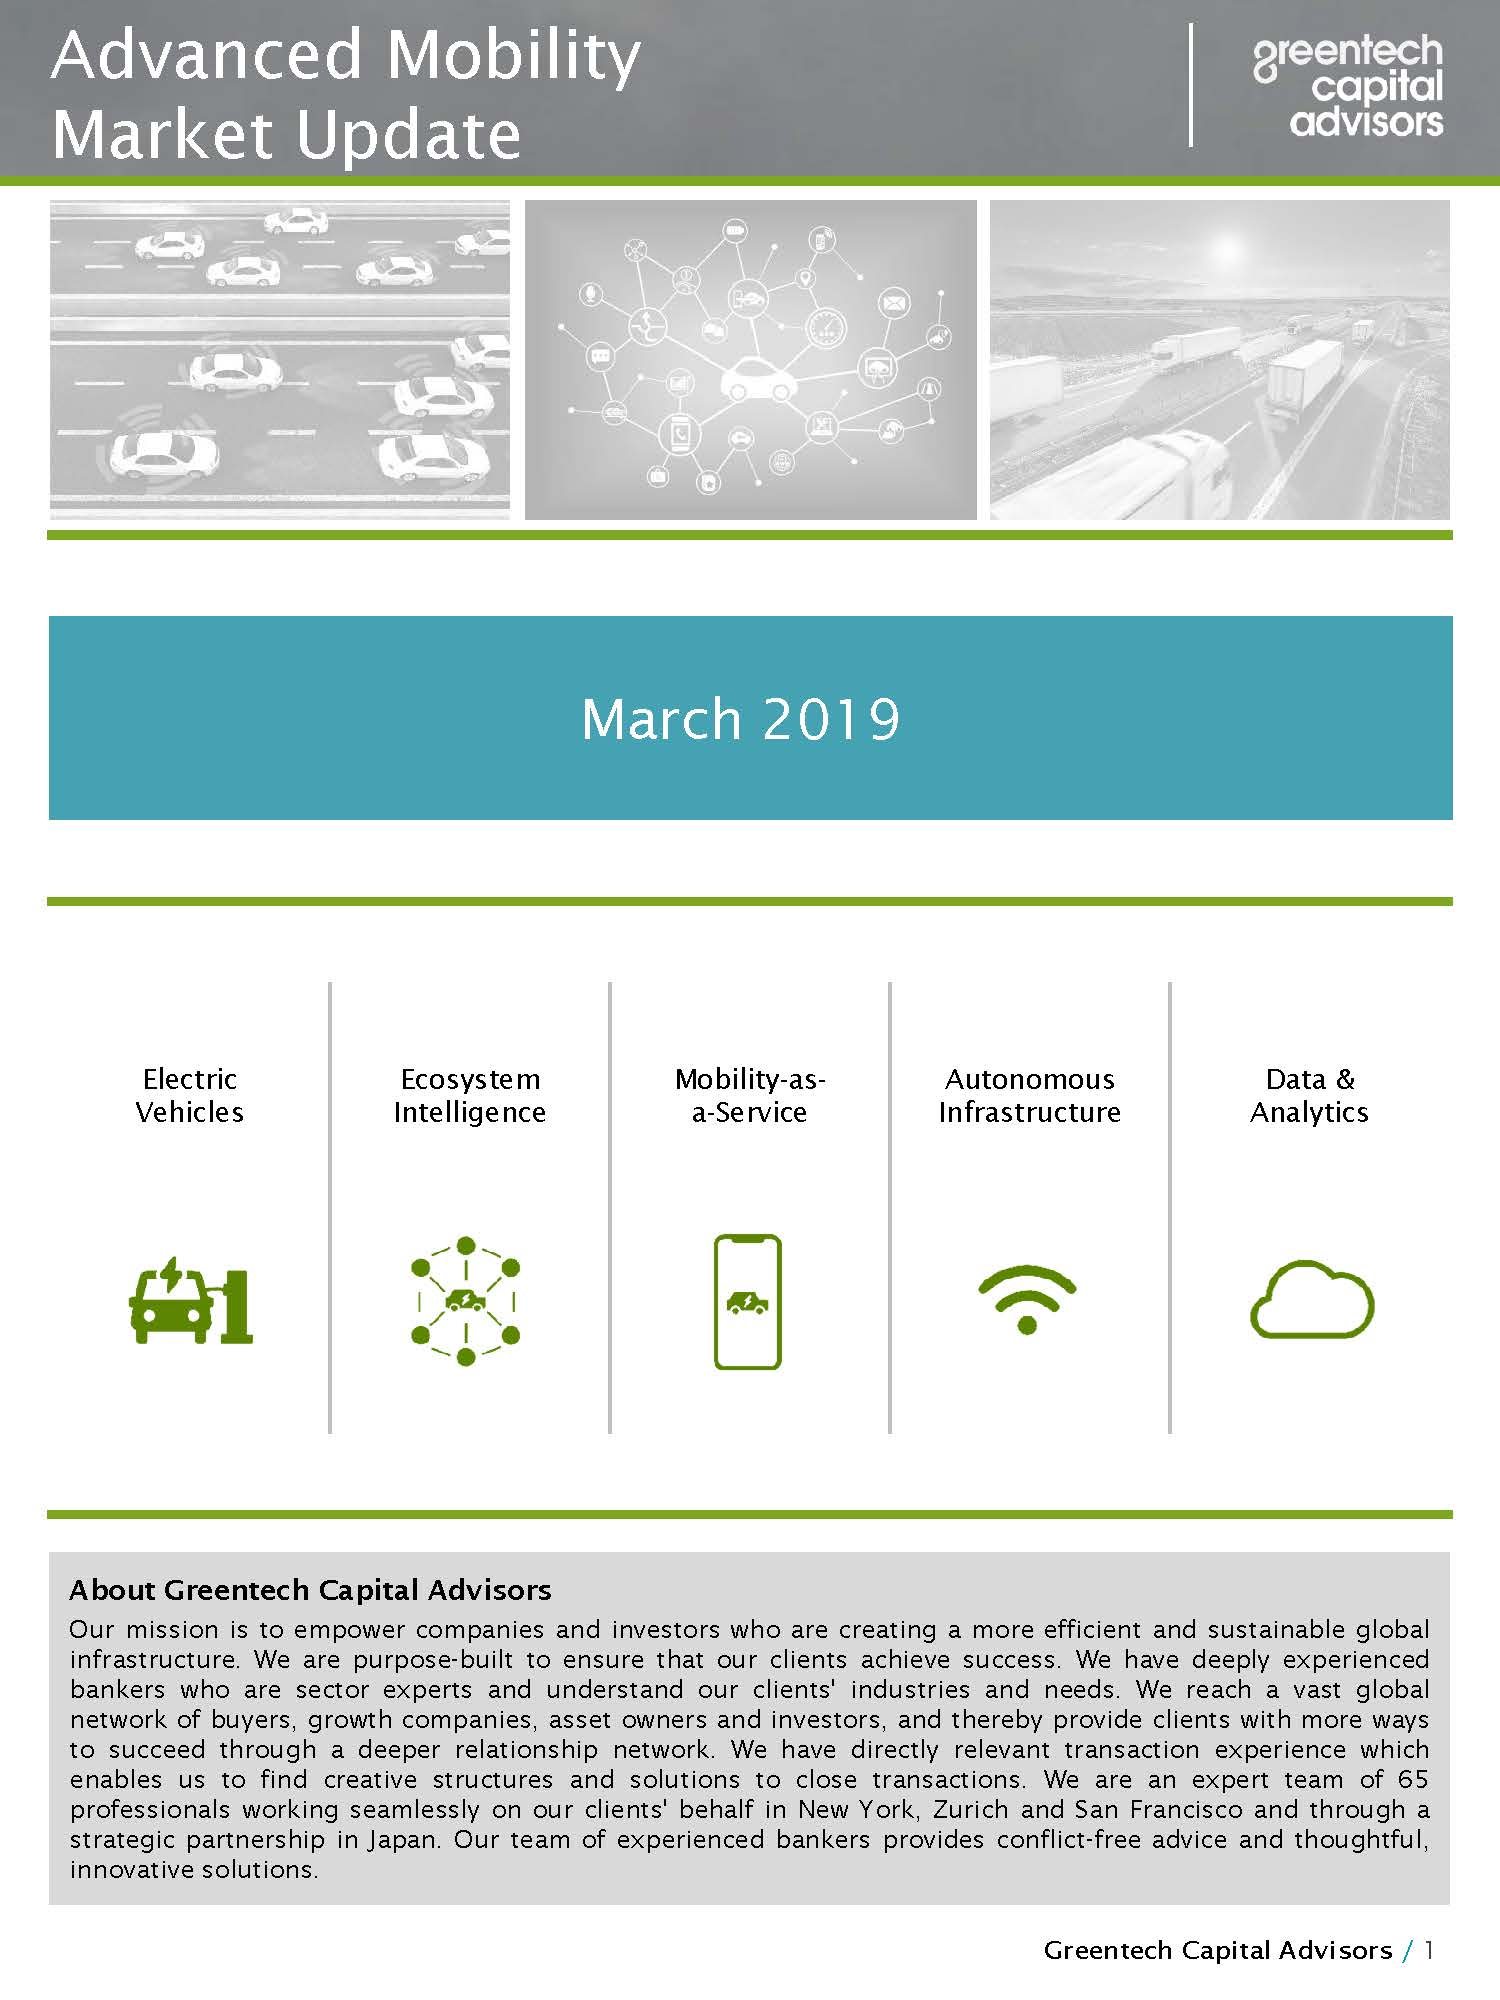 Advanced Mobility Market Update - March 2019